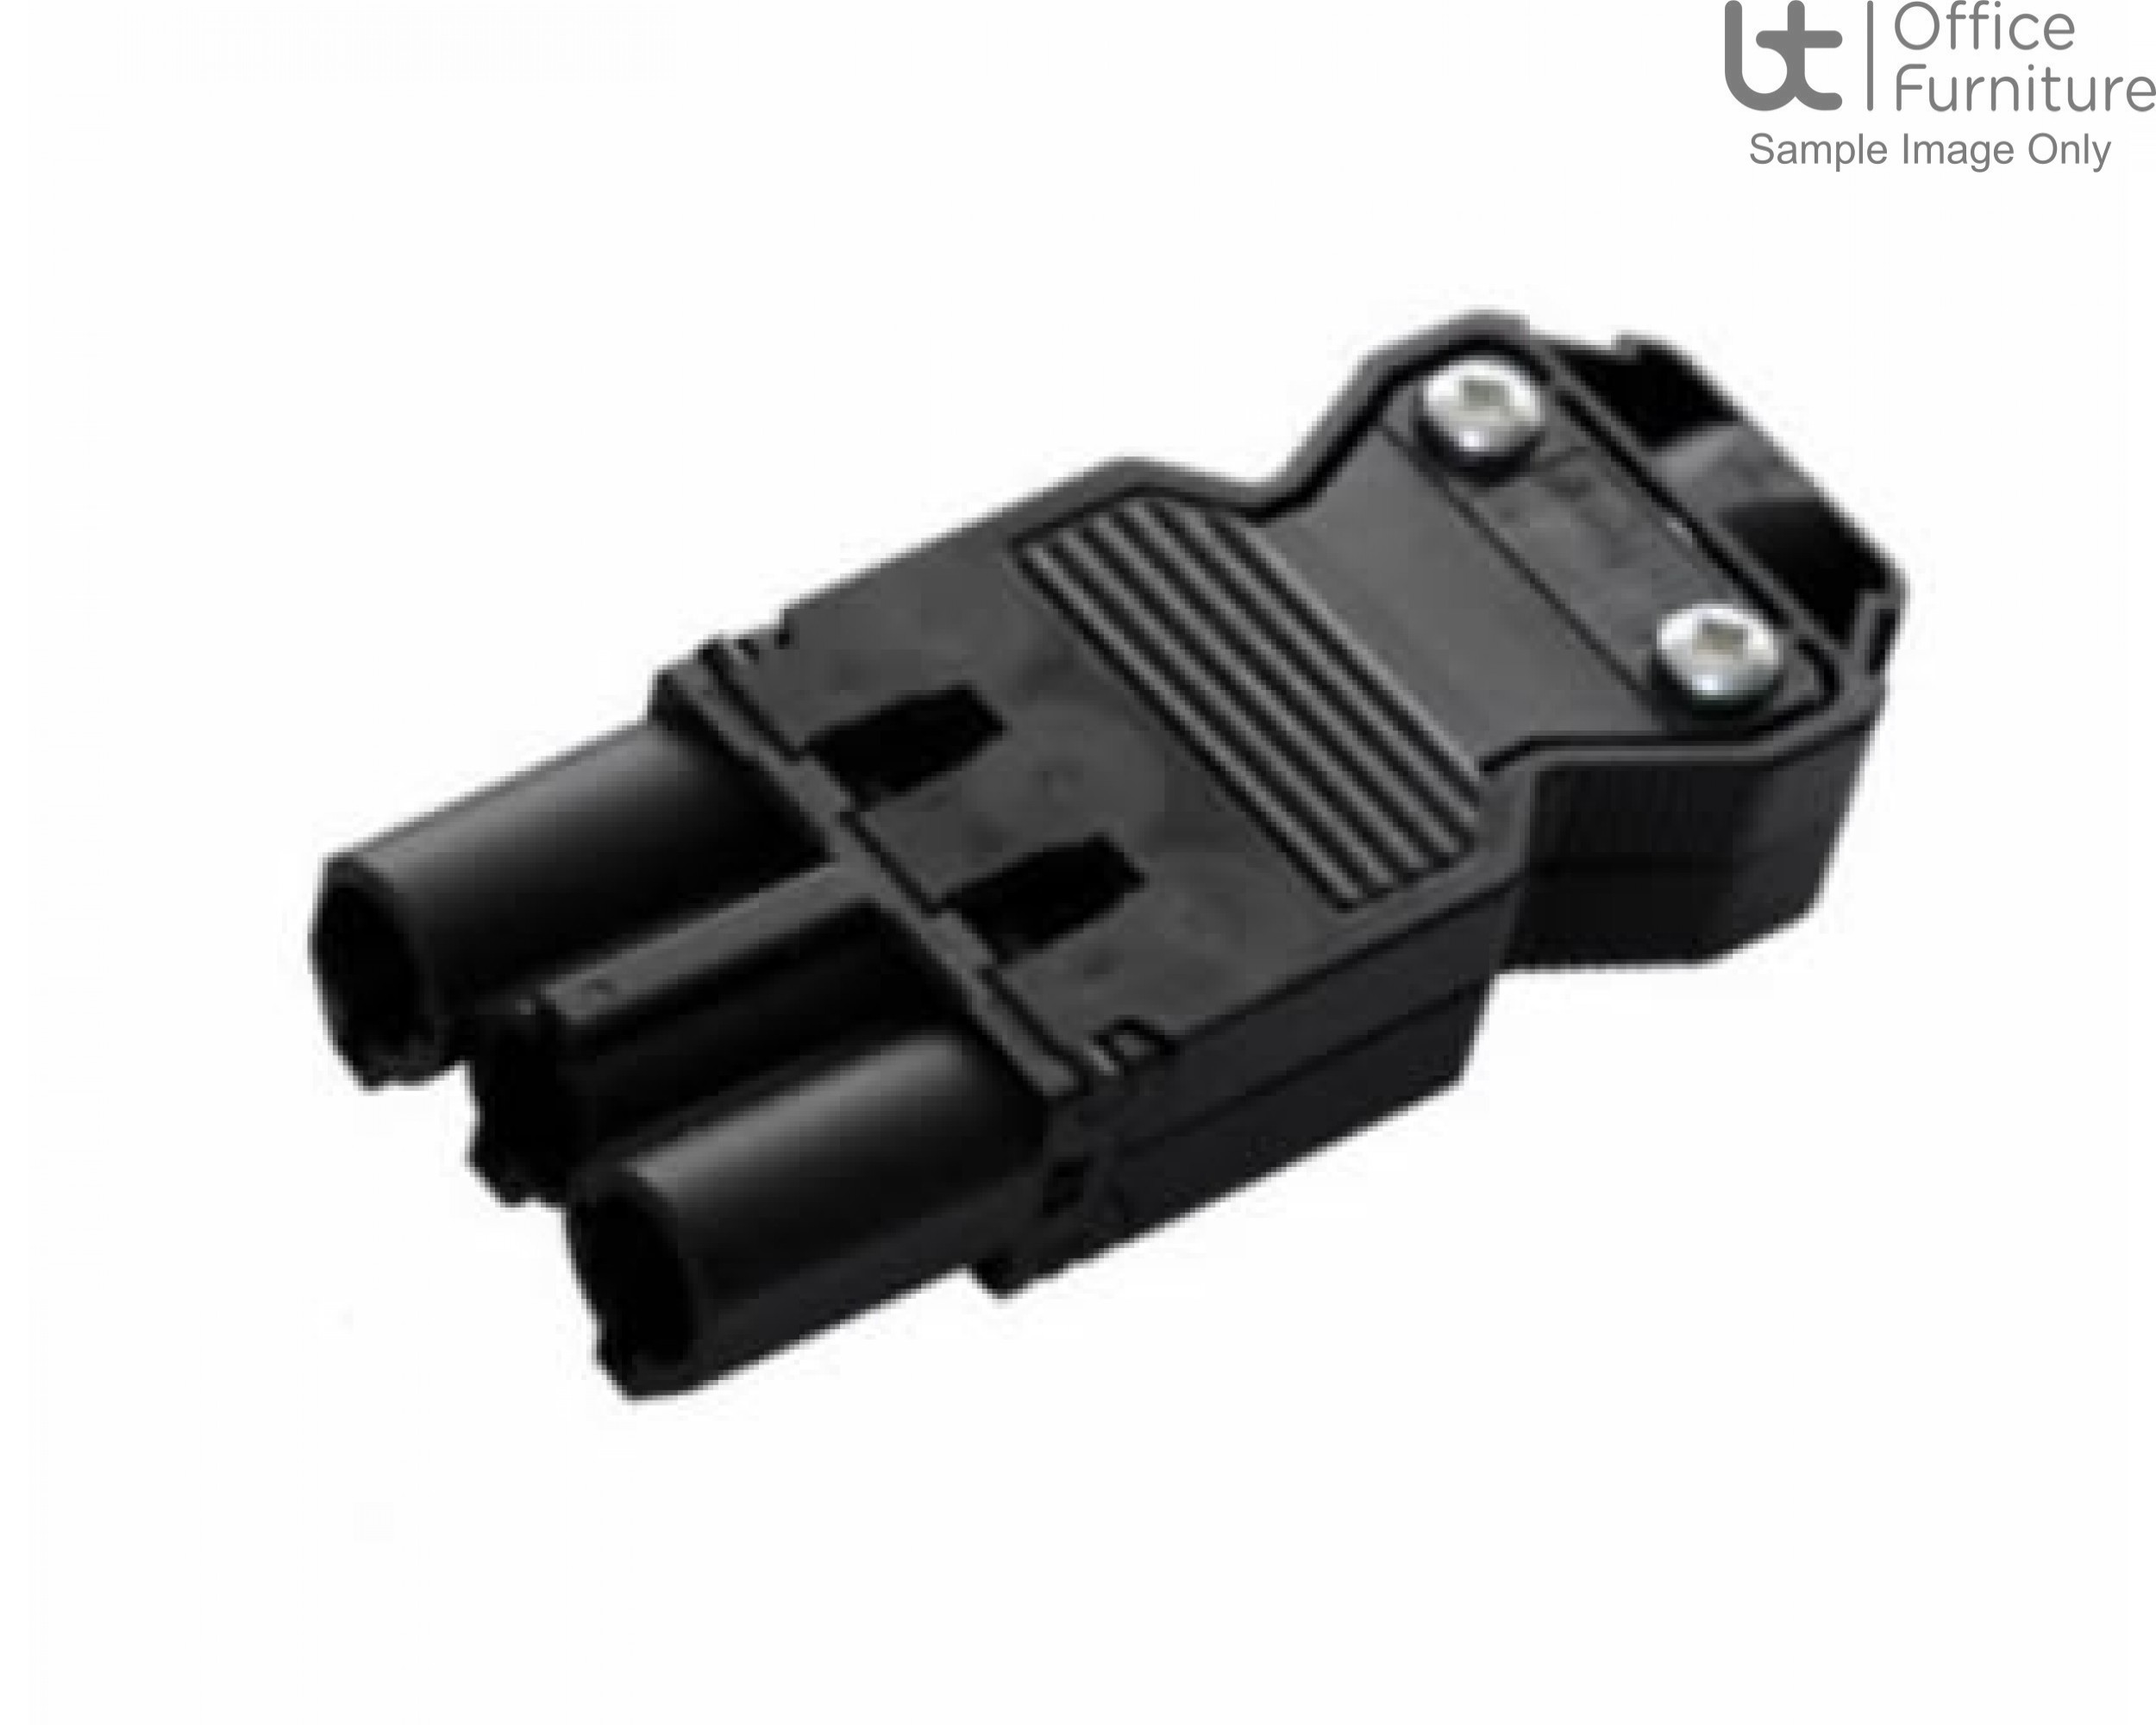 DMC Cable Accessories - Female GST 3-pole self fit connector (Pack of 10)